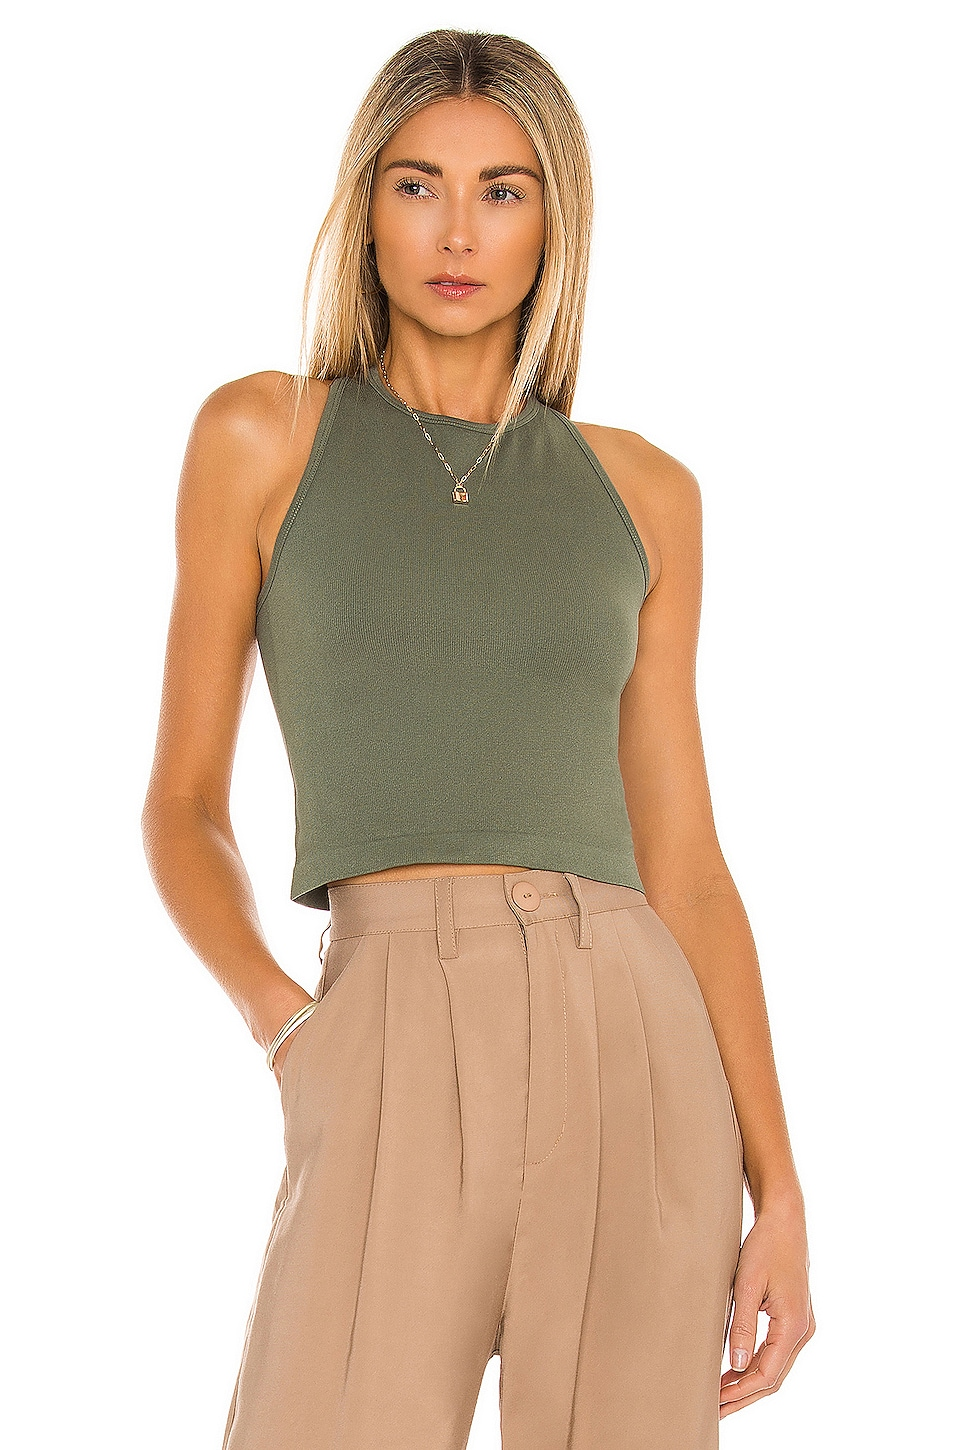 Hayley Racerback Tank Top             Free People                                                                                                       CA$ 39.21 4